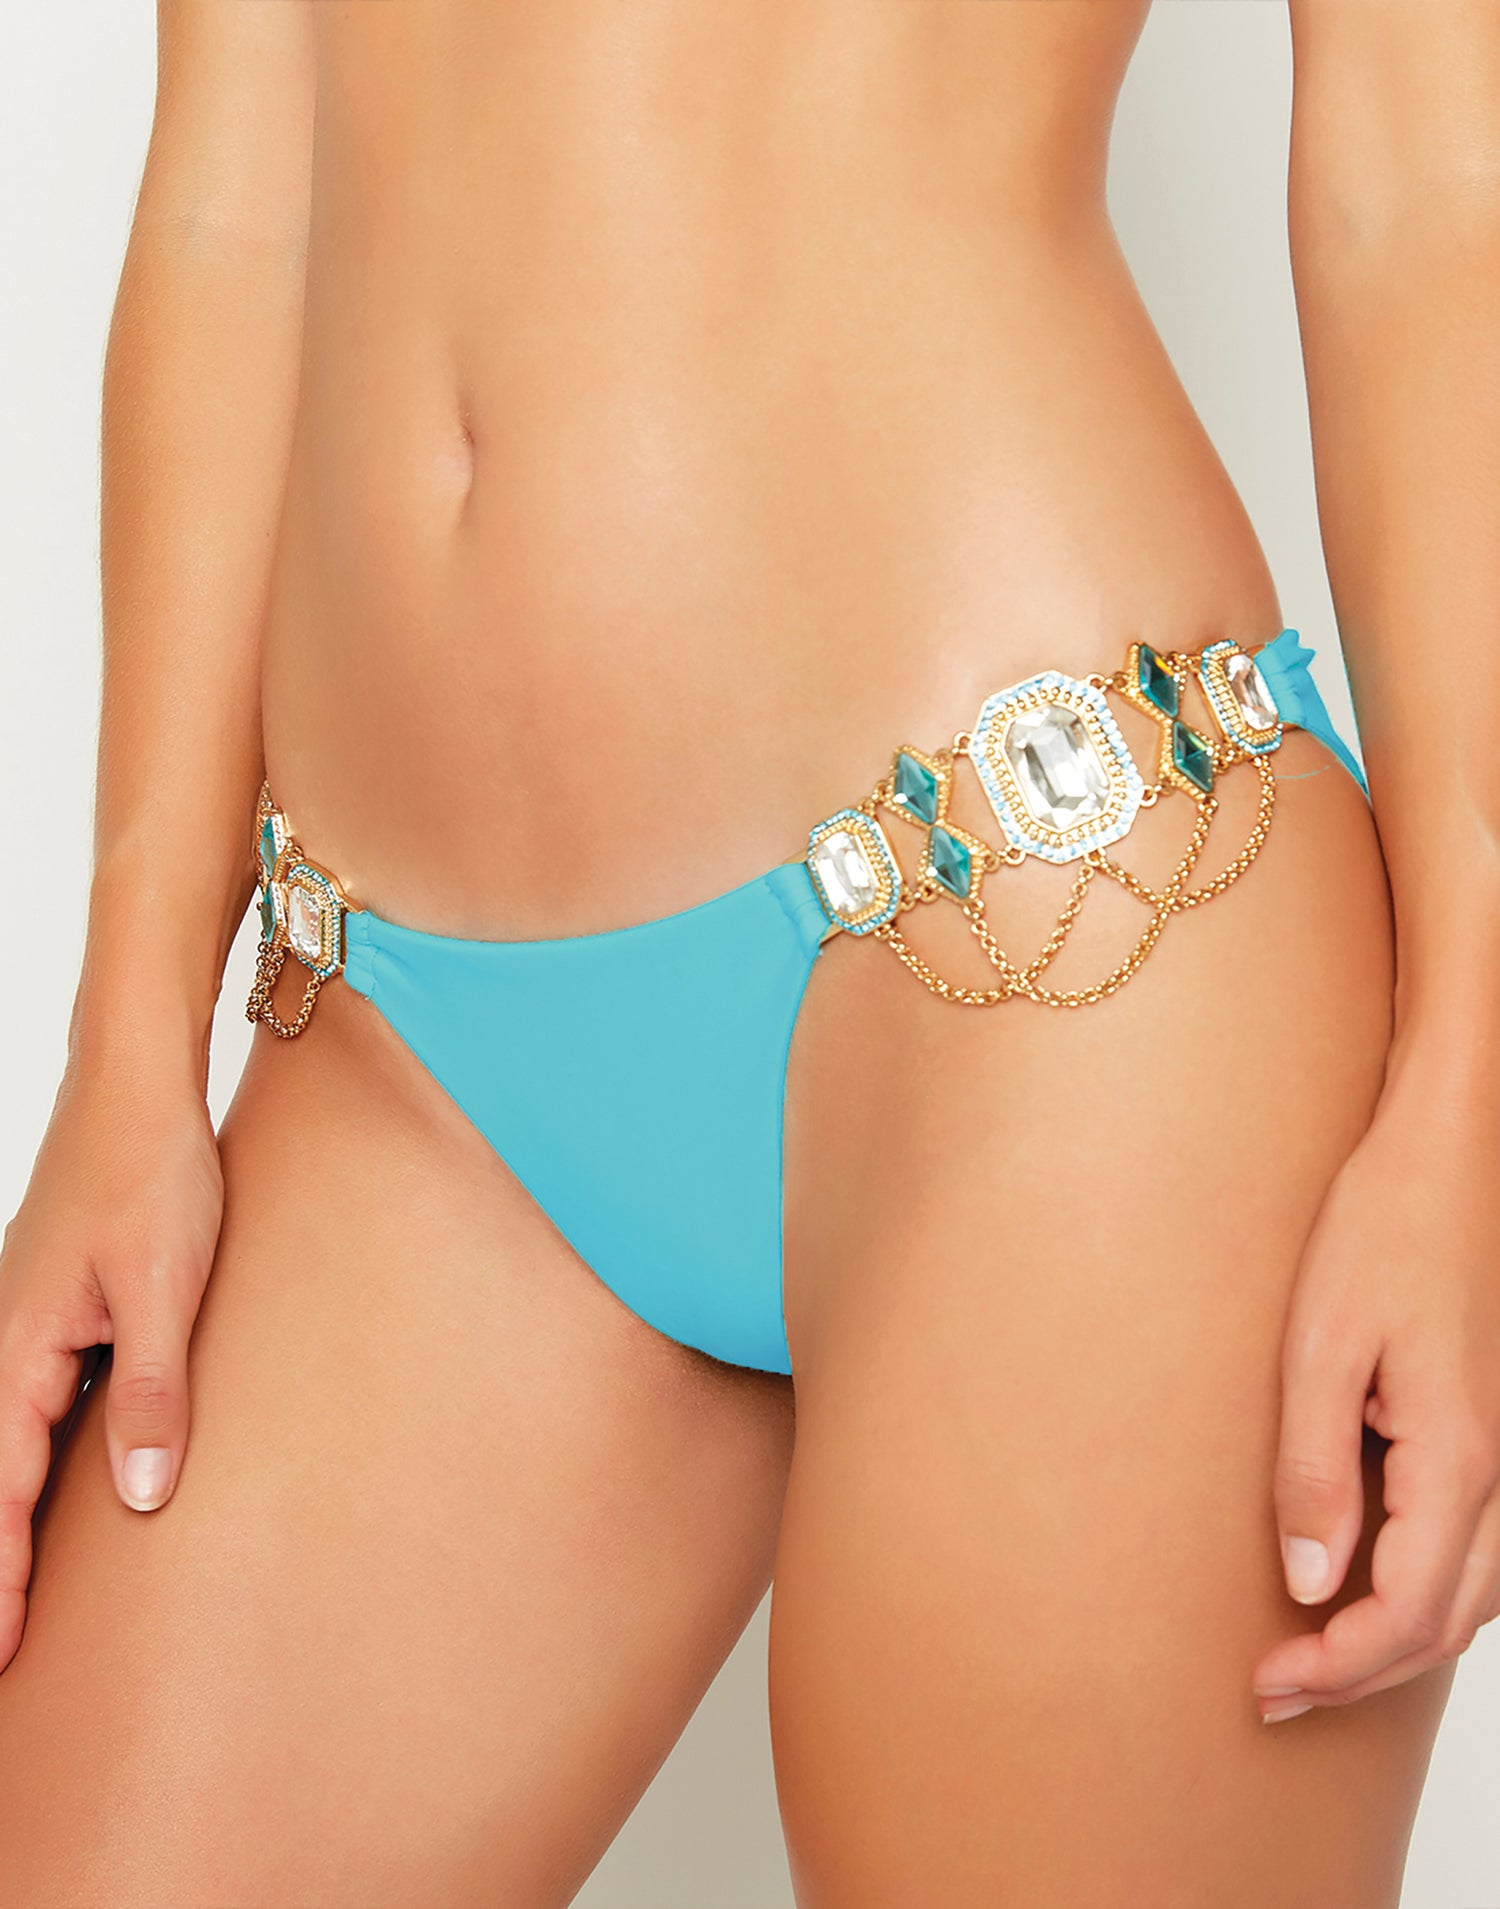 Jazmin Skimpy Bikini Bottom in Sky Blue - detail view